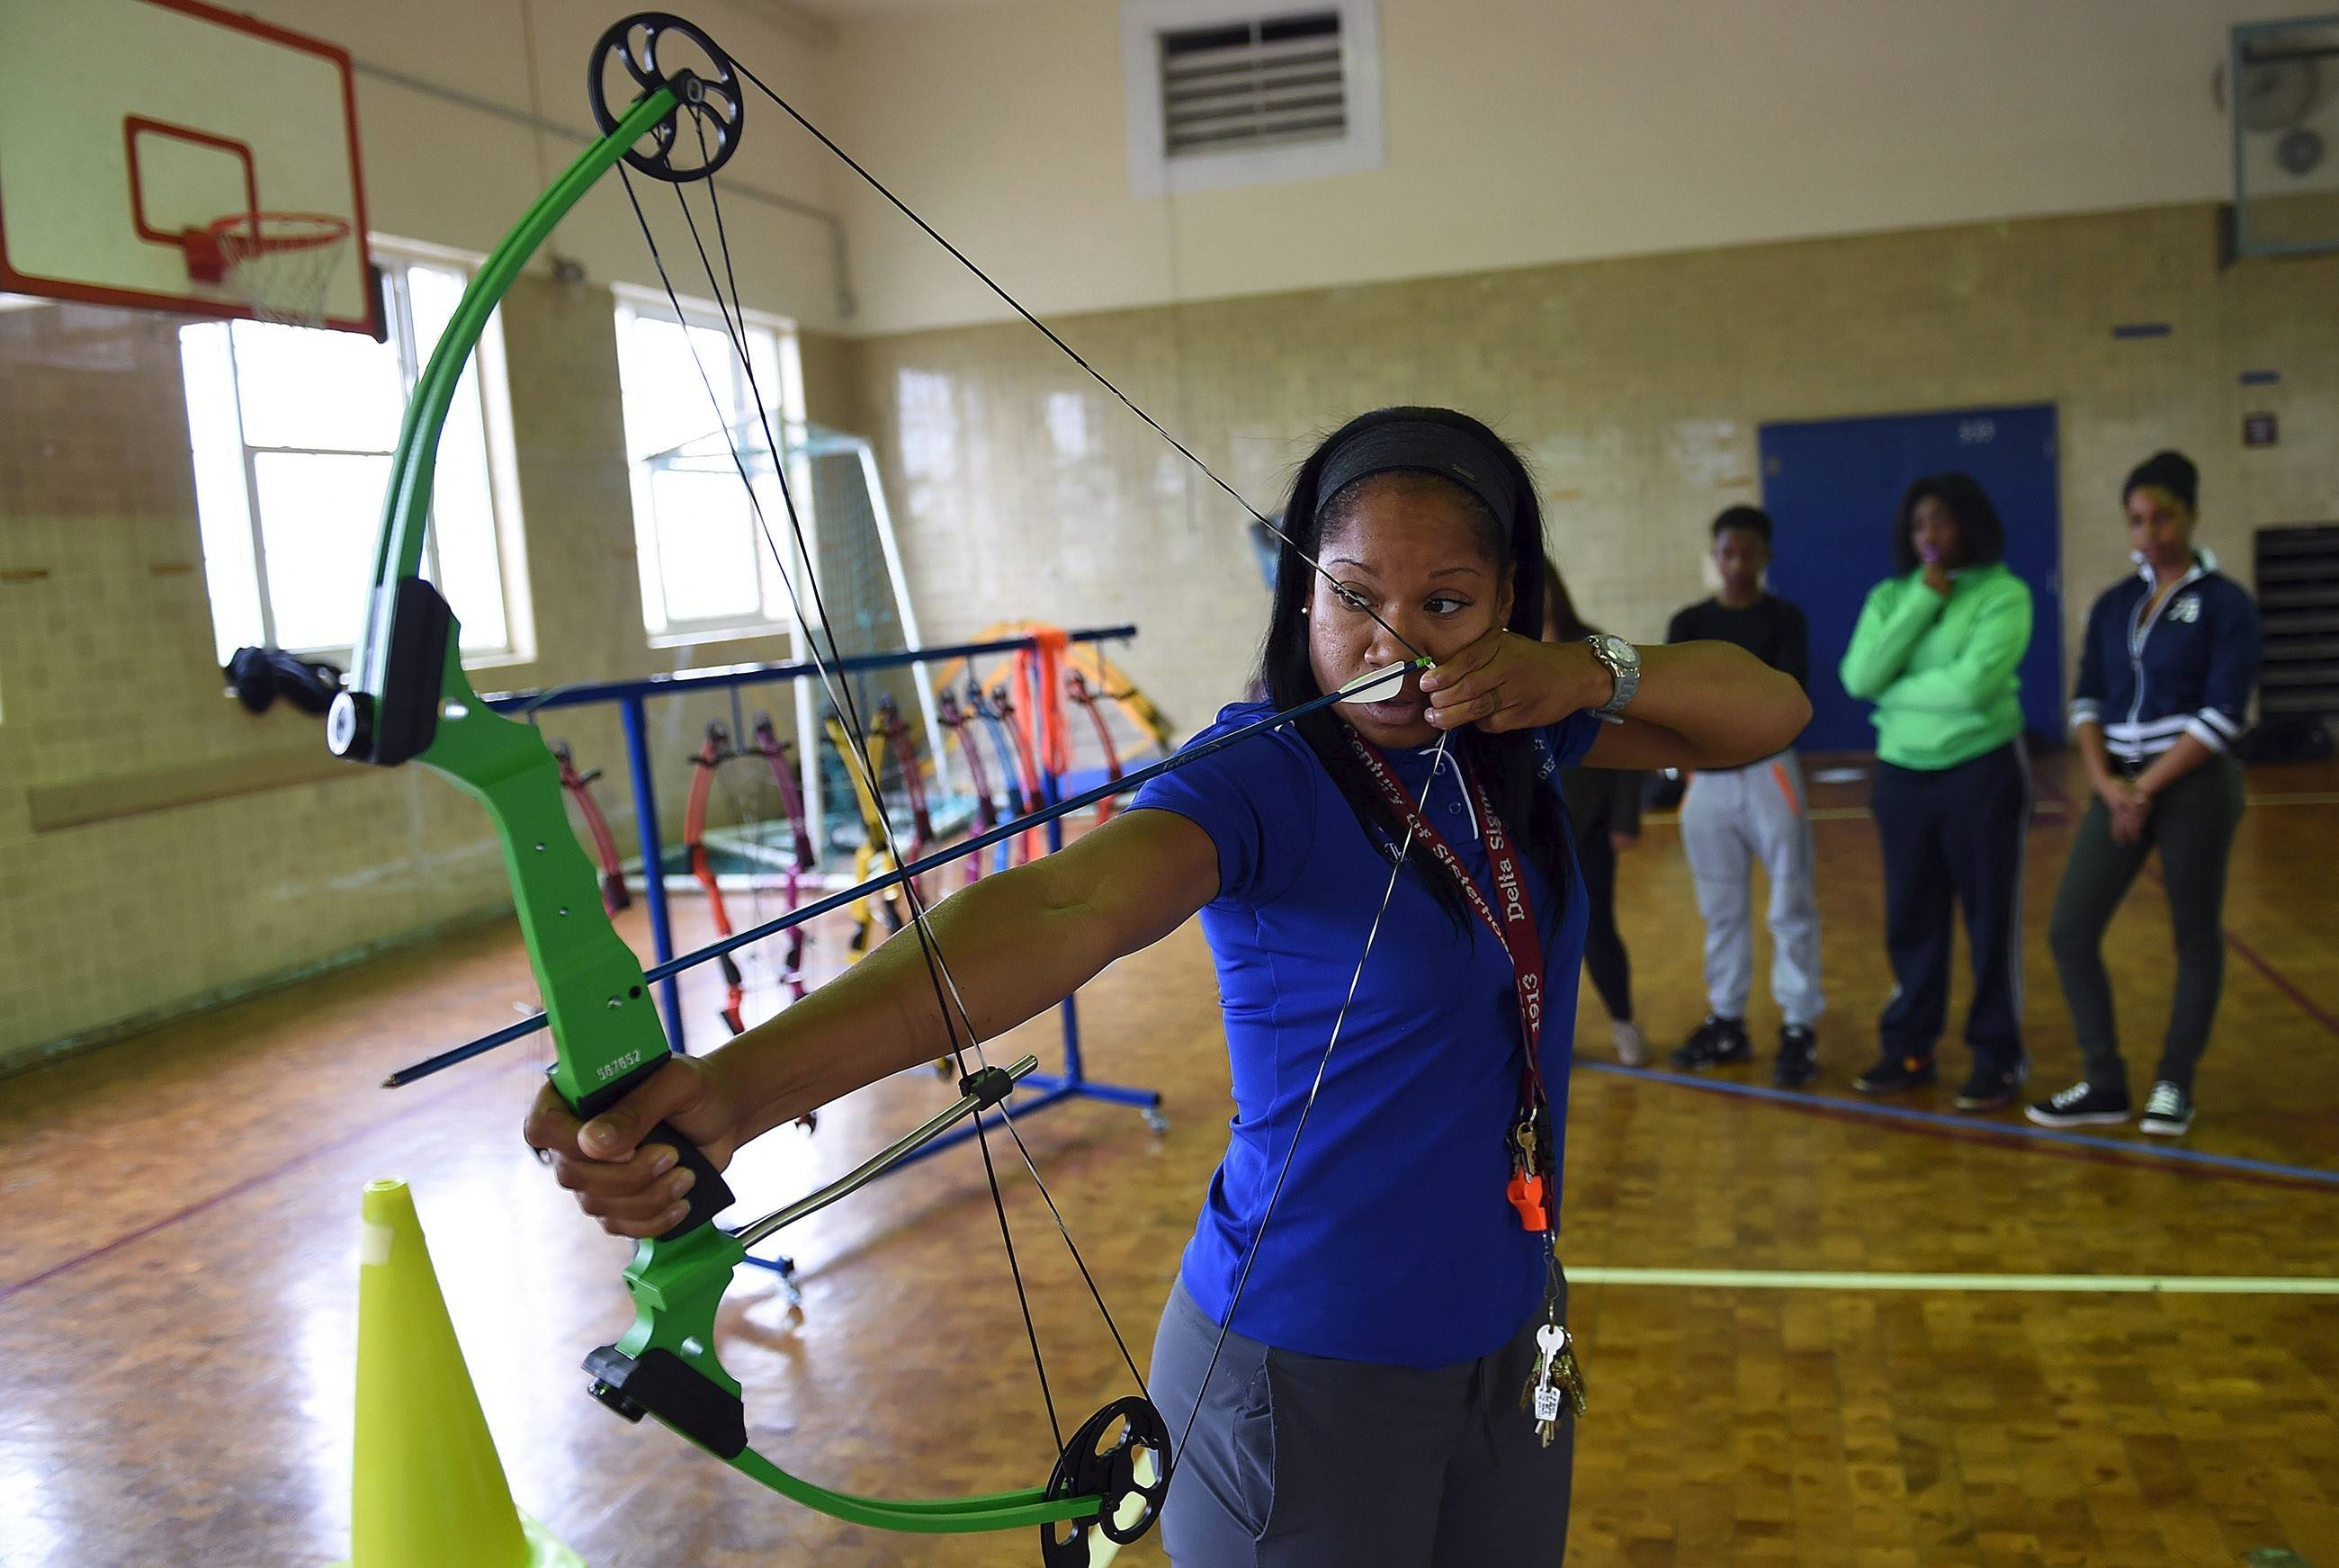 Miesha Thompson teaches archery to students at Roosevelt High School in Washington.